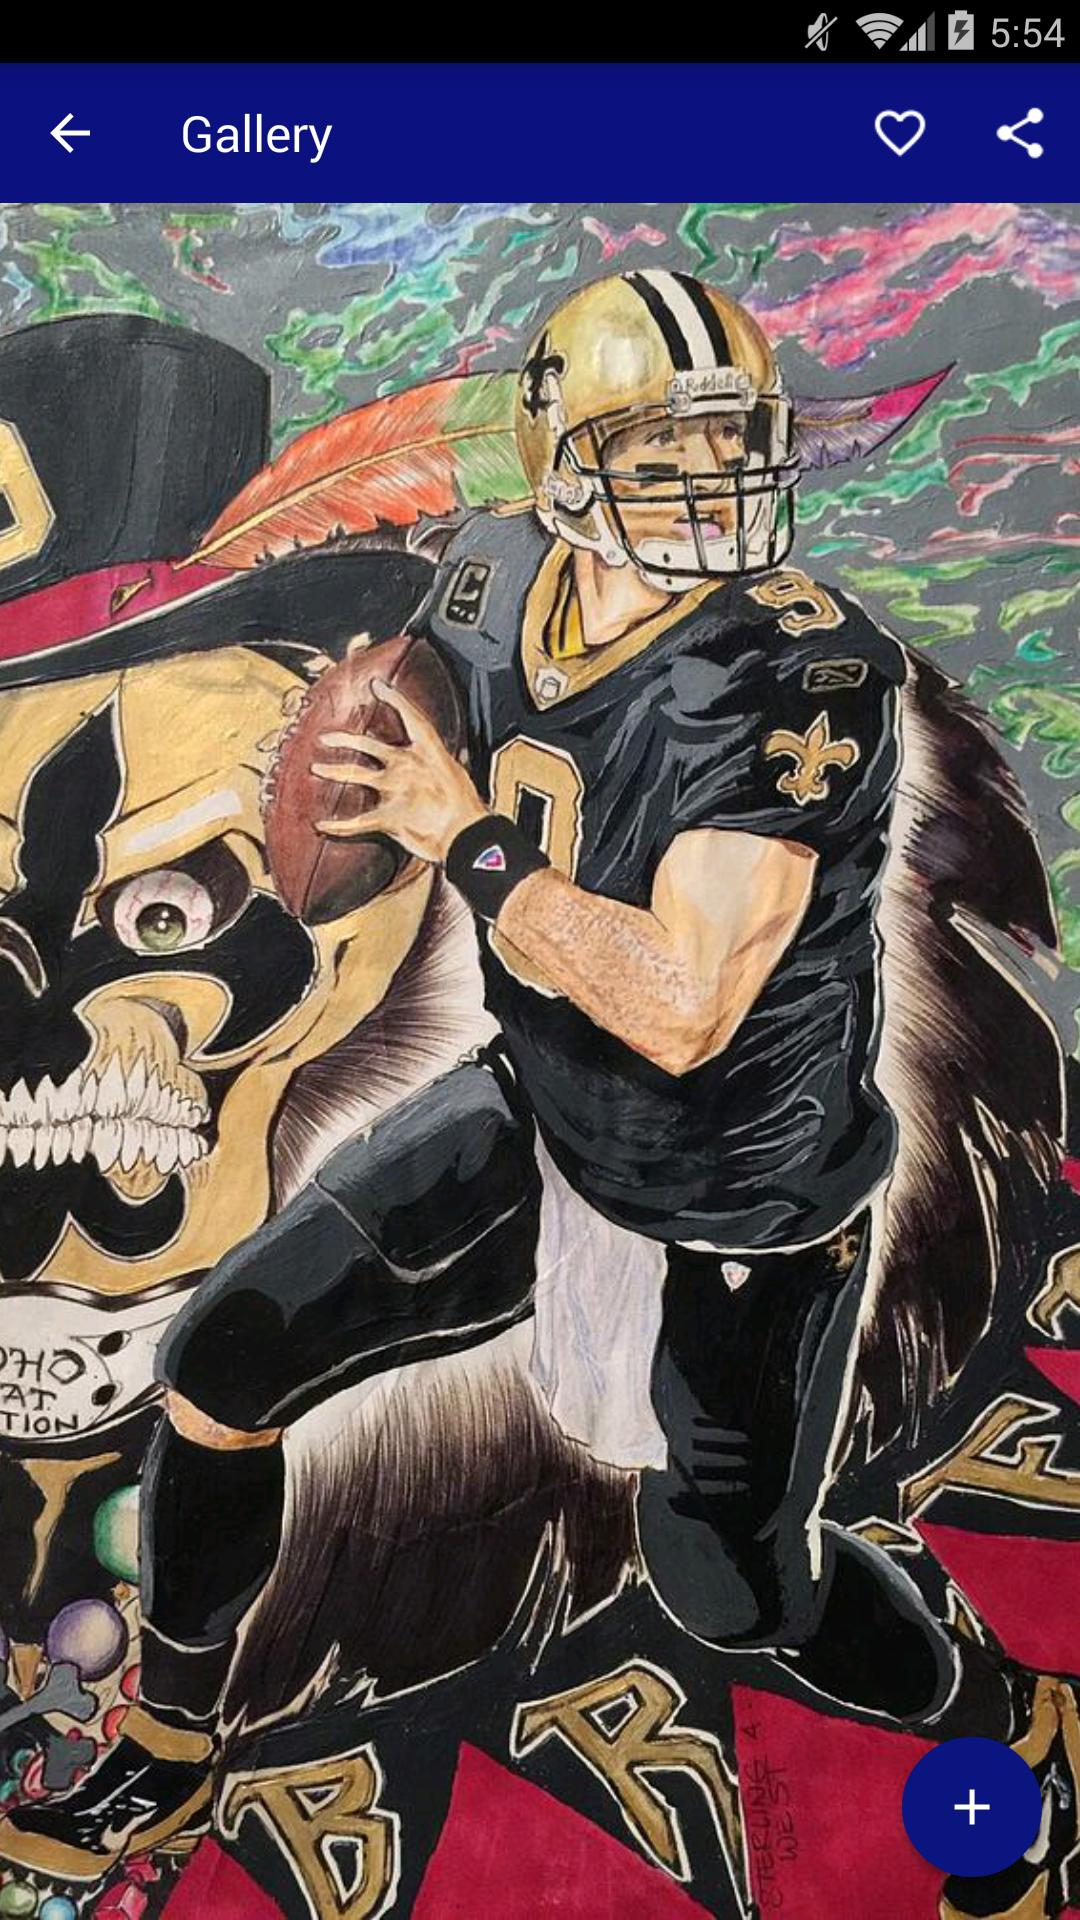 Drew Brees Wallpaper Hd Nfl For Android Apk Download